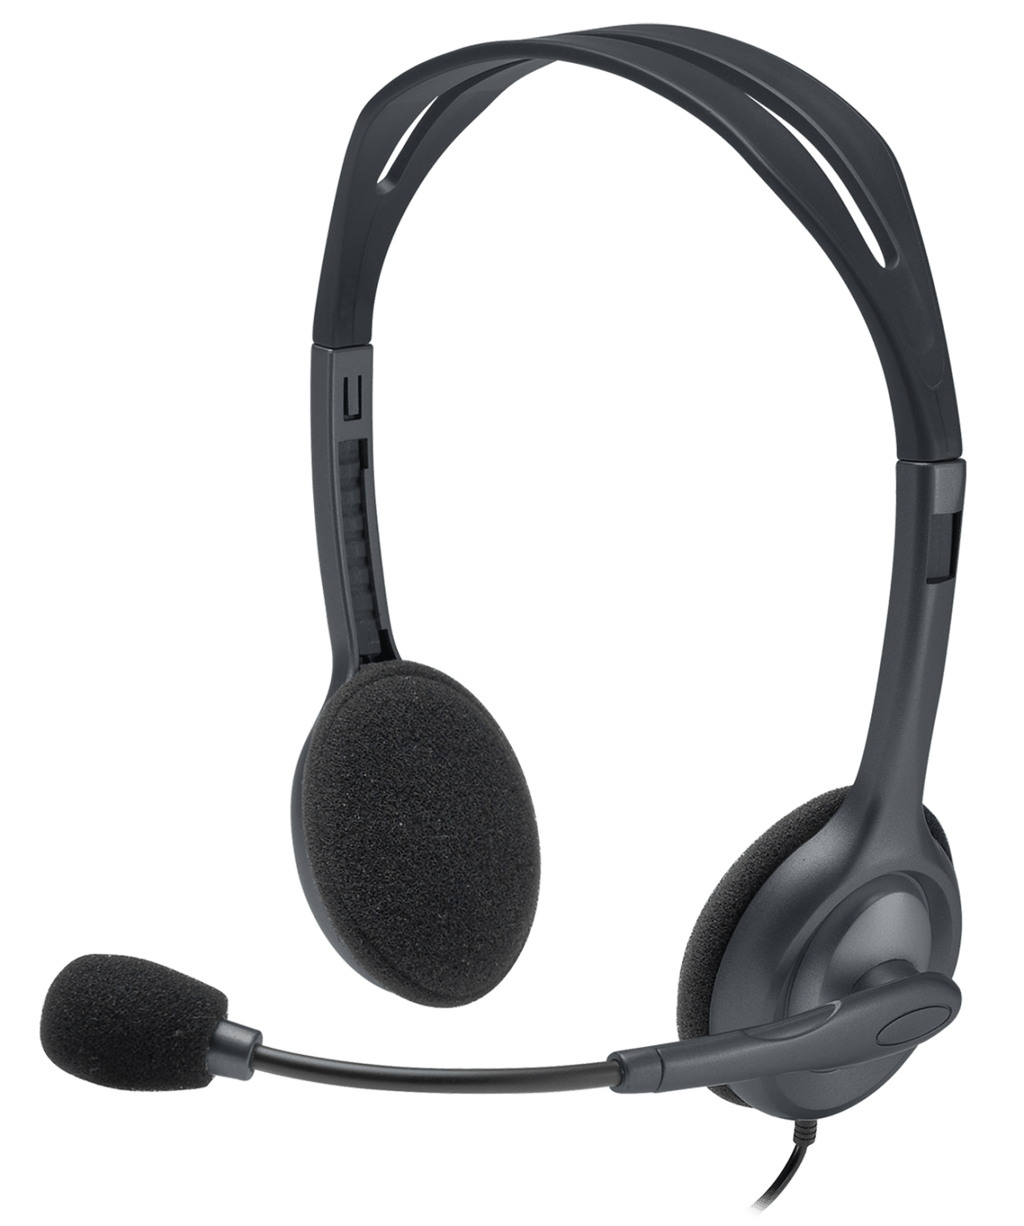 Most affordable Headset for Home based Learning and Work from Home - Logitech H111